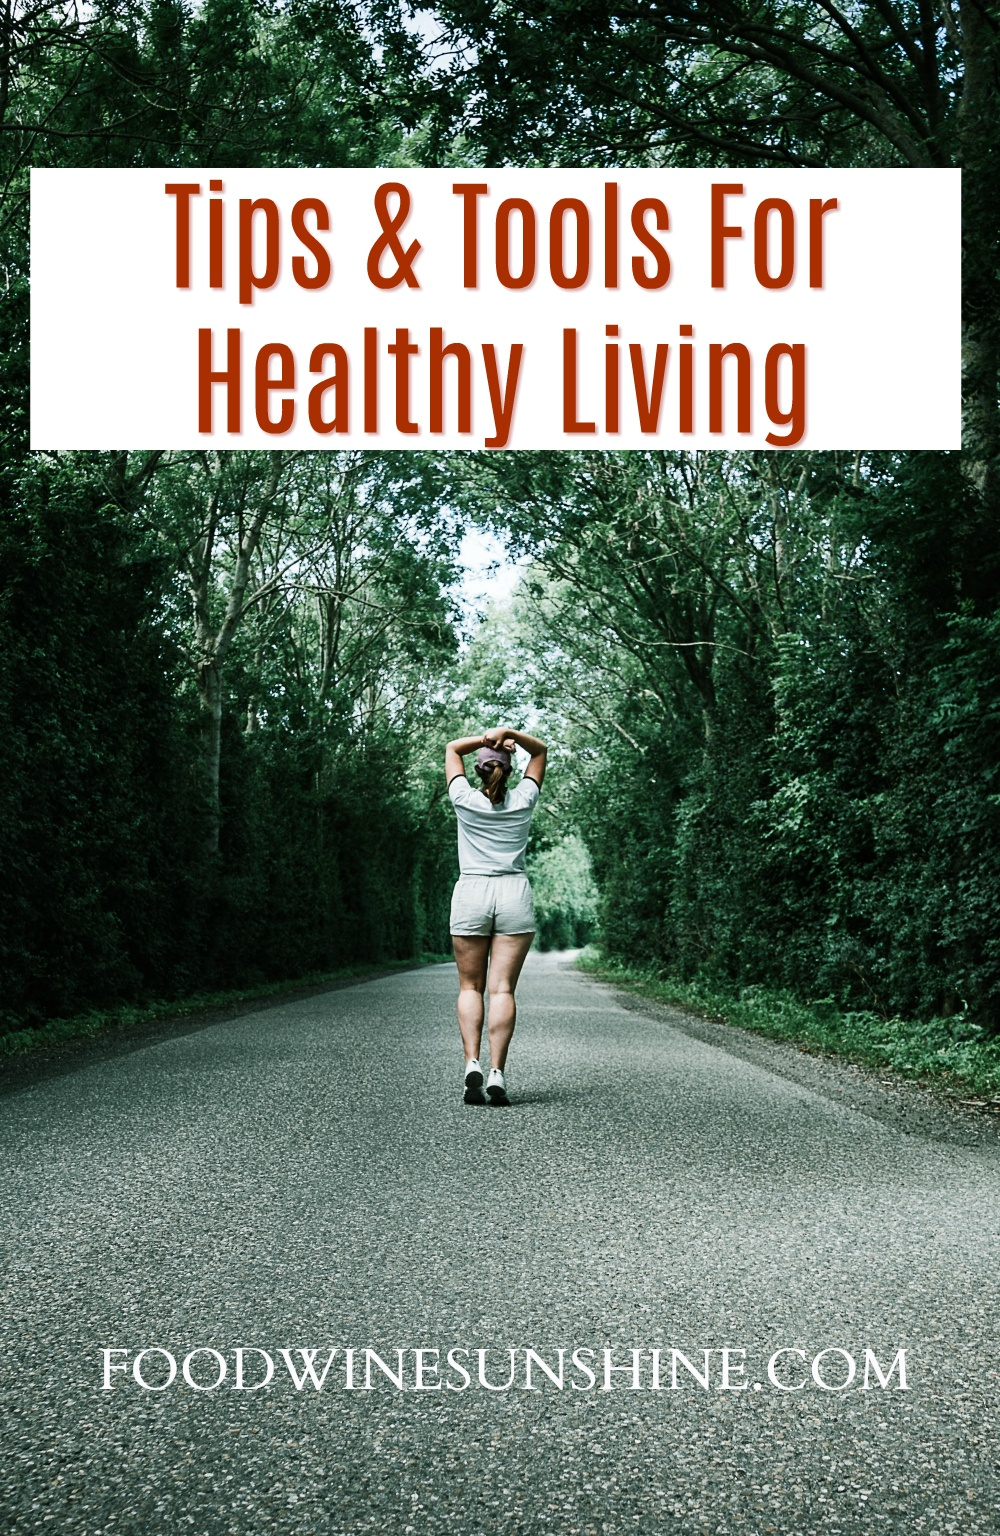 Tips & Tools For Healthy Living